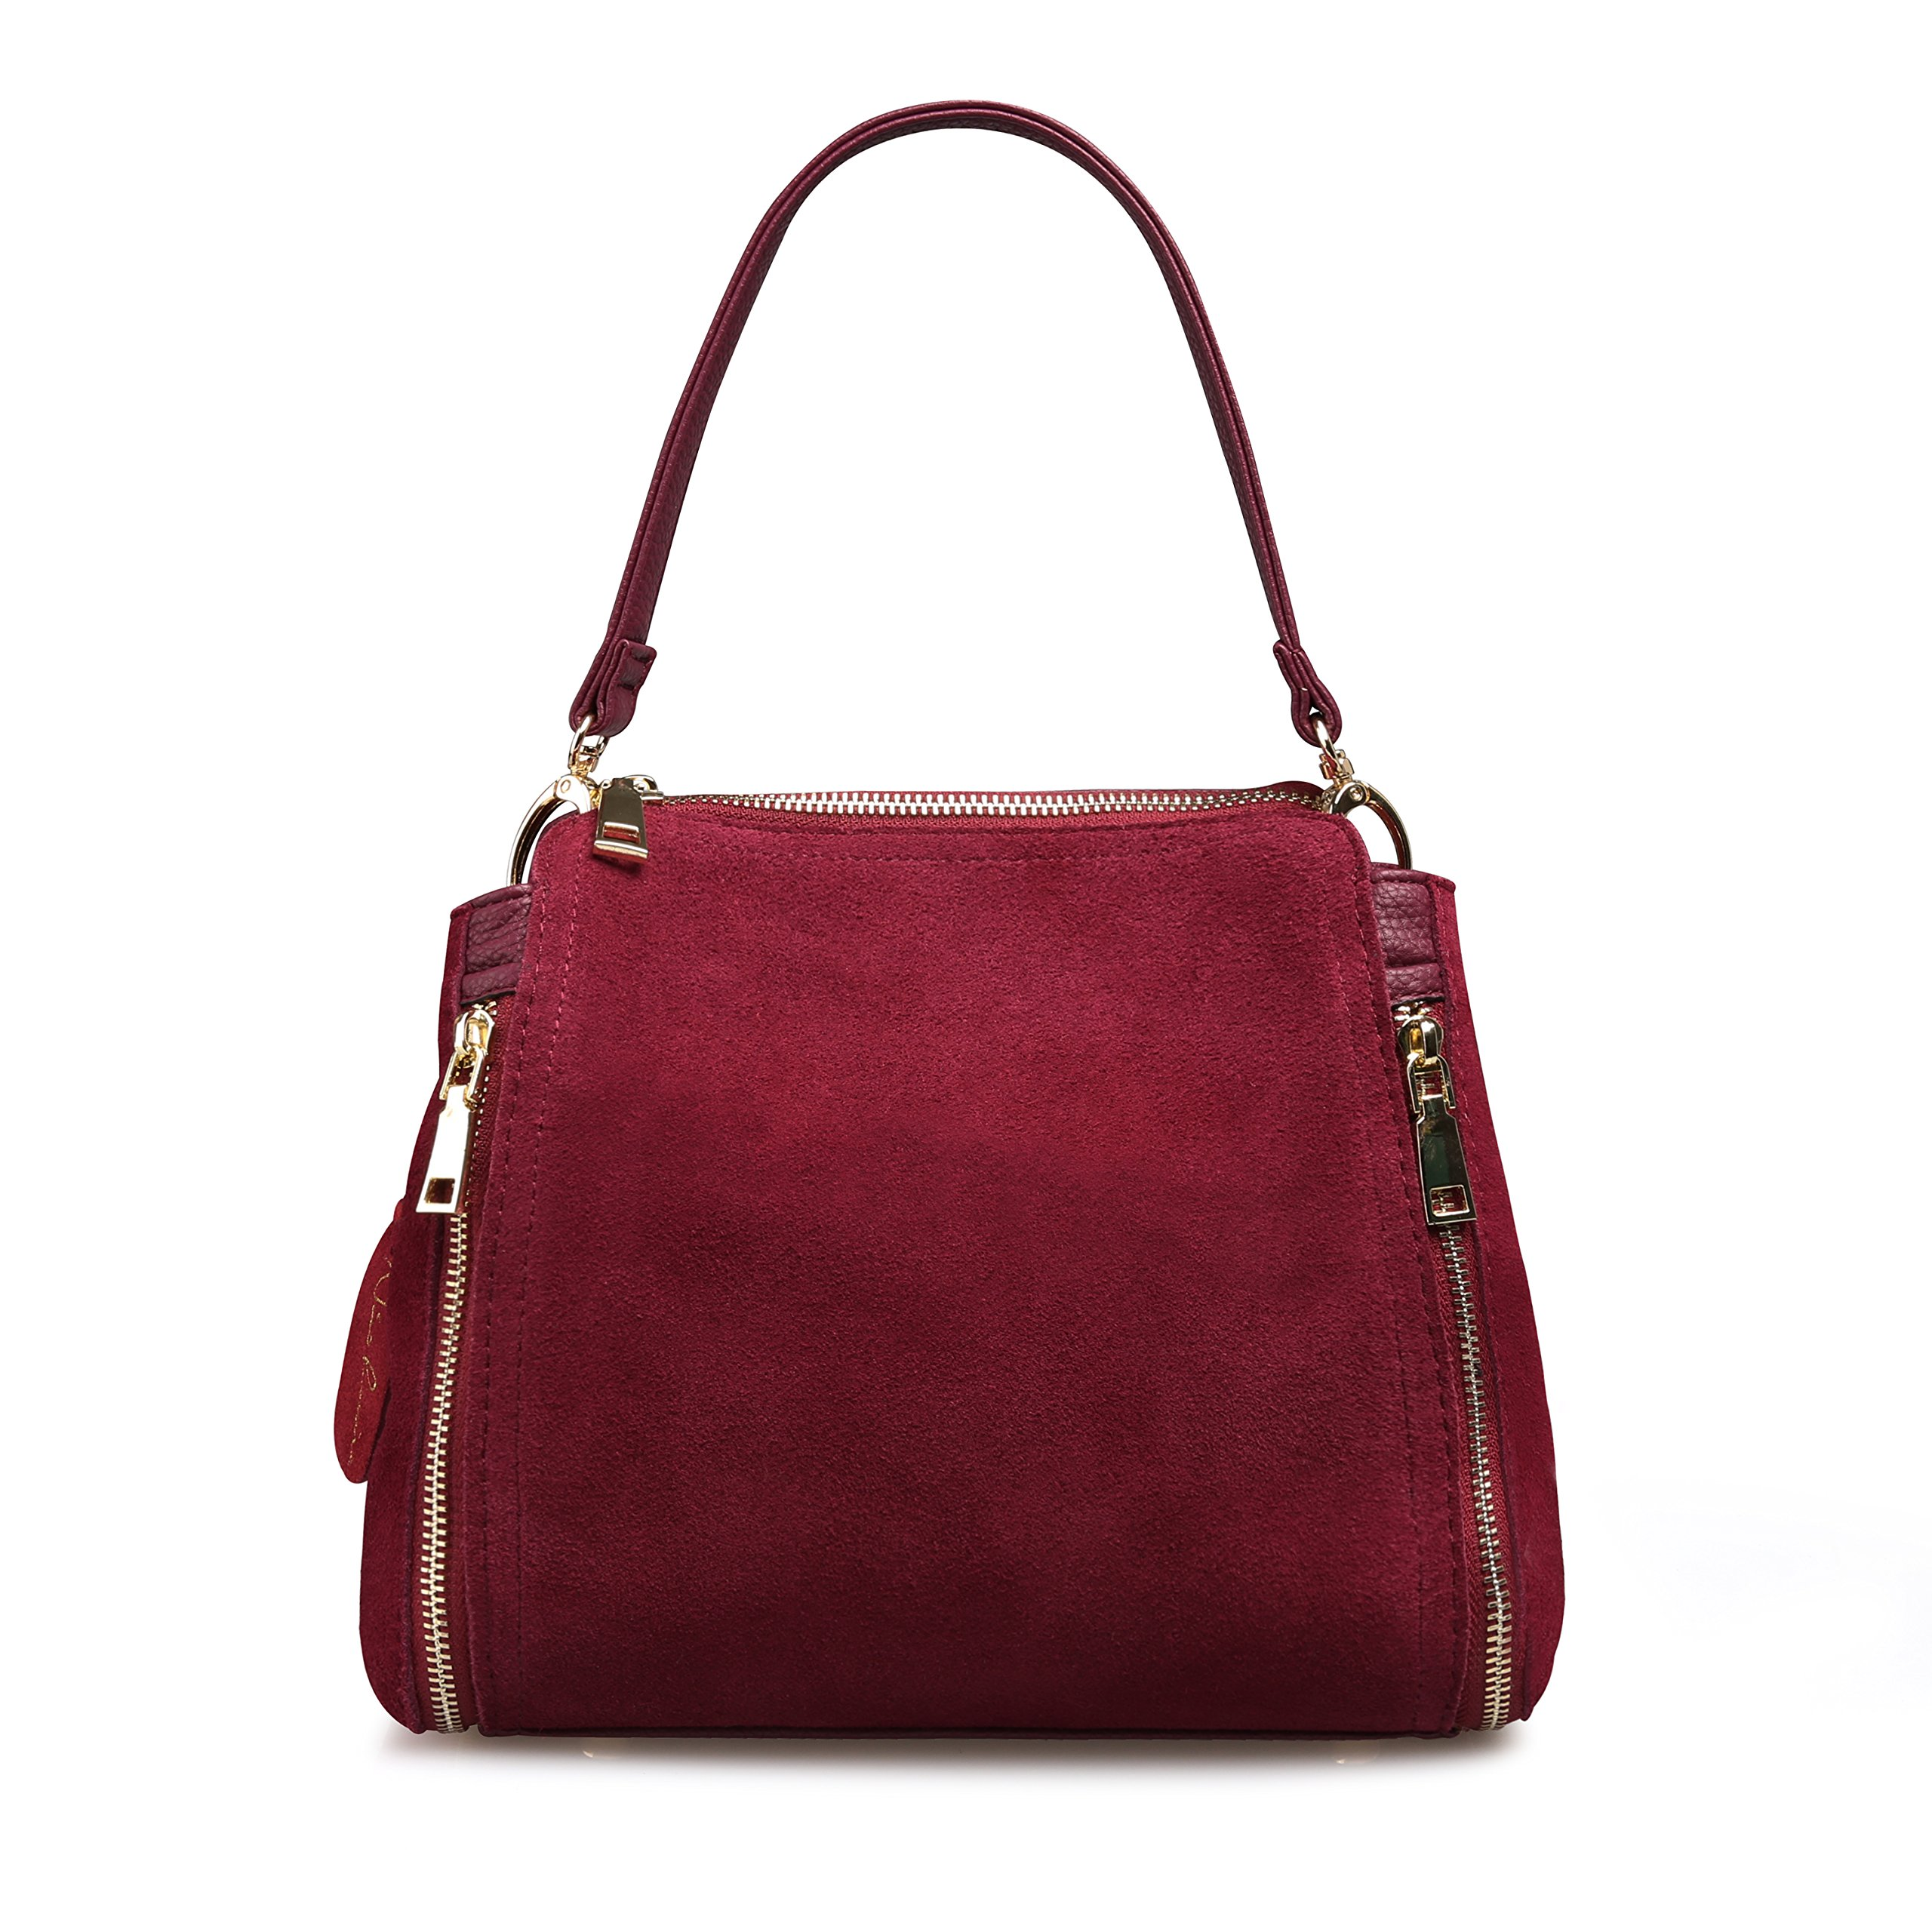 Women Real Suede Leather Shoulder Bag Leisure Doctor Handbag For Female Girls Top-handle (Burgundy)